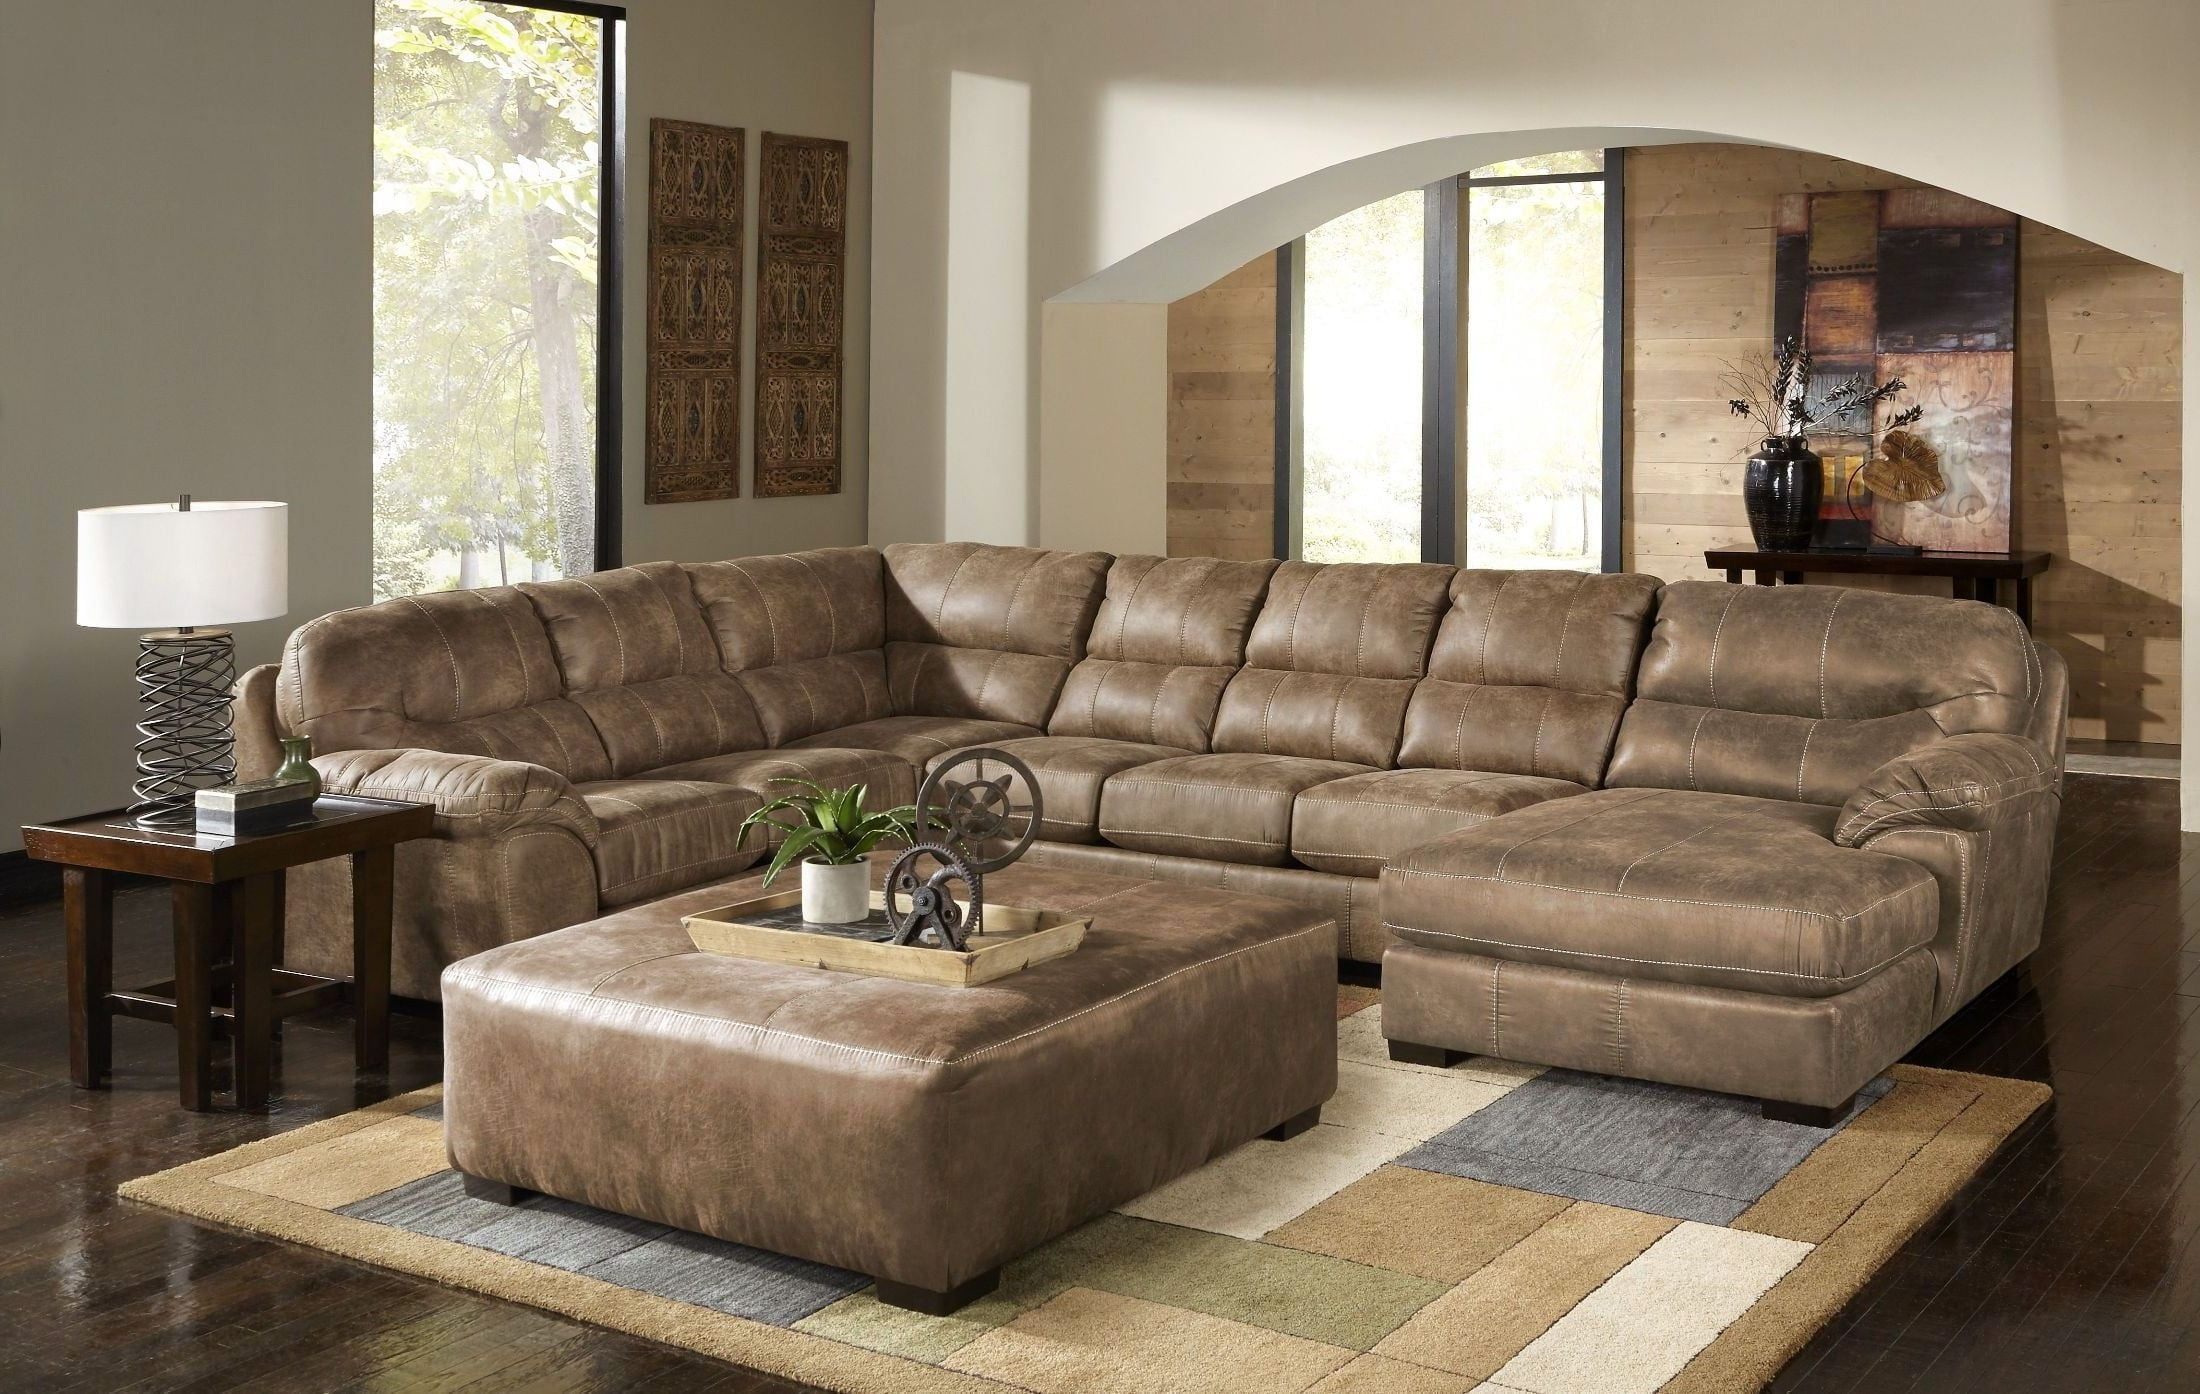 Avery 2 Piece Sectionals With Laf Armless Chaise Regarding Preferred Grant Silt Laf Chaise Sectional, 4453 75 122749302749, Jackson (View 8 of 20)